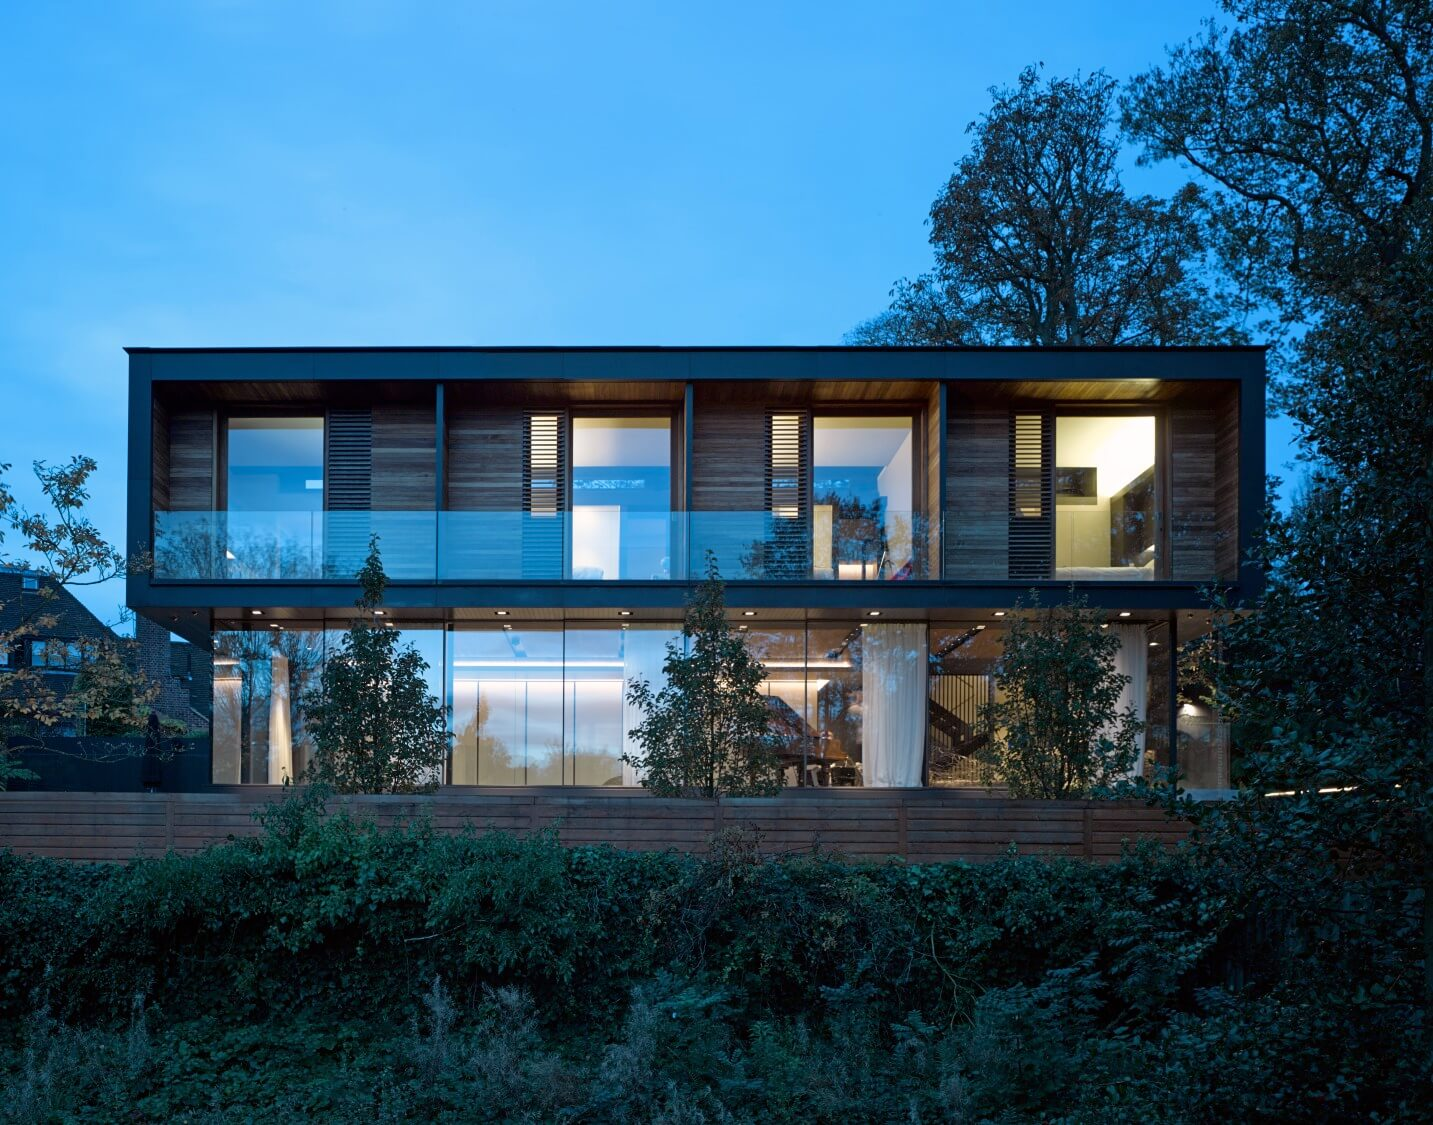 The box-like structure stands both apart and within its natural environment, via sharp angles and natural materials.